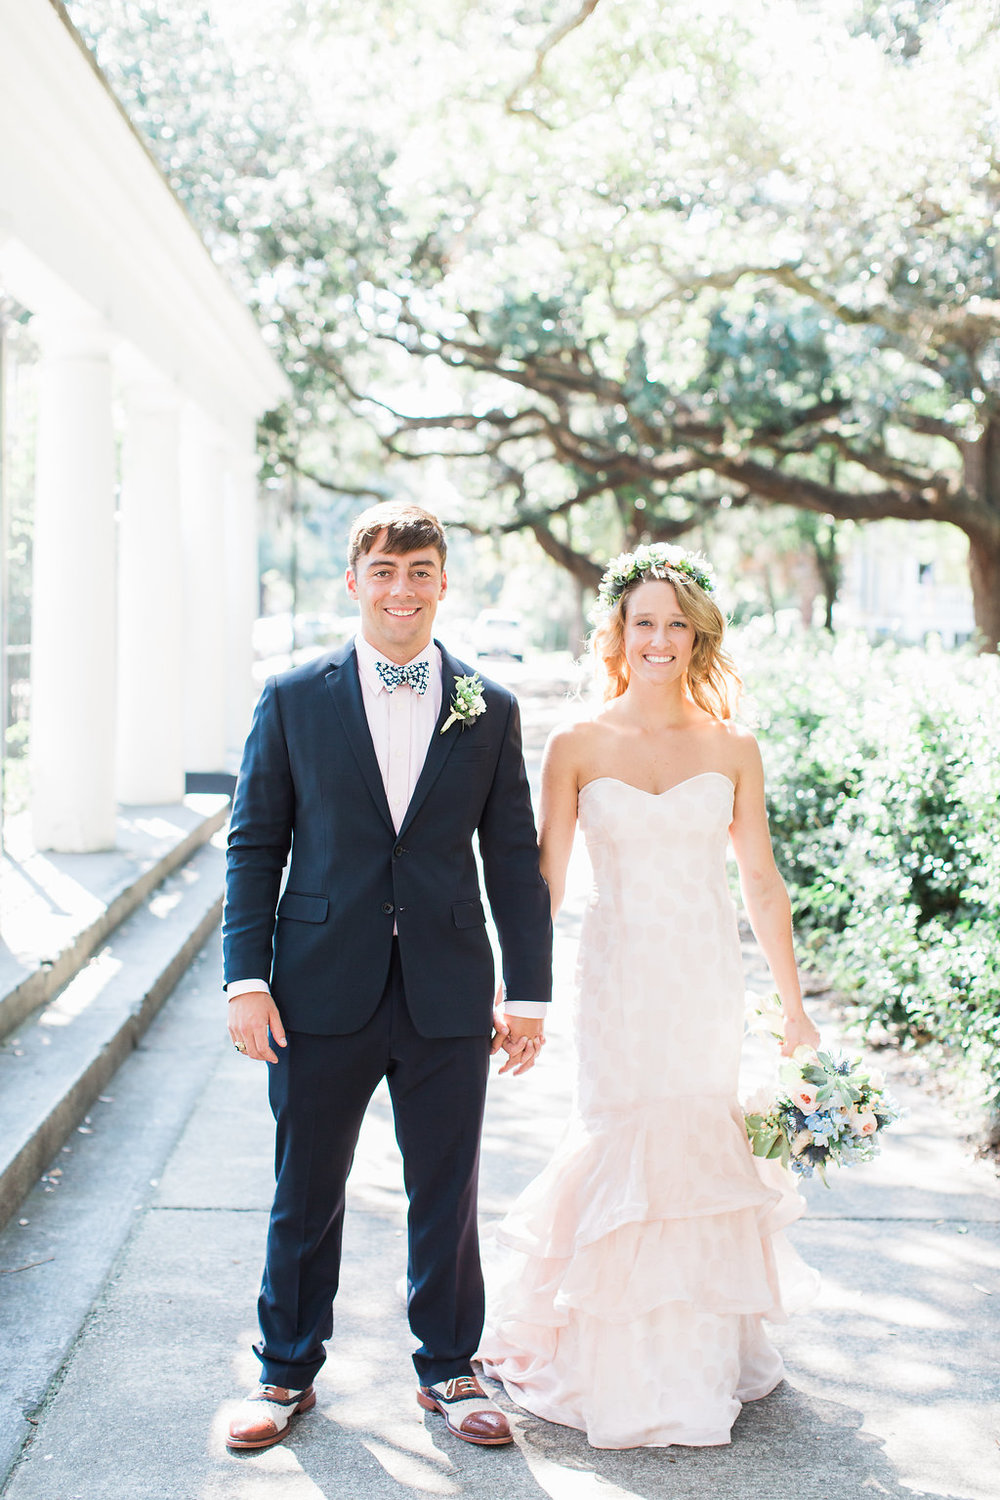 eve-pat-apt-b-photography-Jacklynn-bridal-blush-wedding-dress-polka-dot-wedding-dress-ivory-and-beau-bridal-boutique-savannah-wedding-harry-potter-wedding-savannah-bridal-boutique-savannah-wedding-planner-urban-poppy-florist-soho-south-cafe-wedding-19.JPG